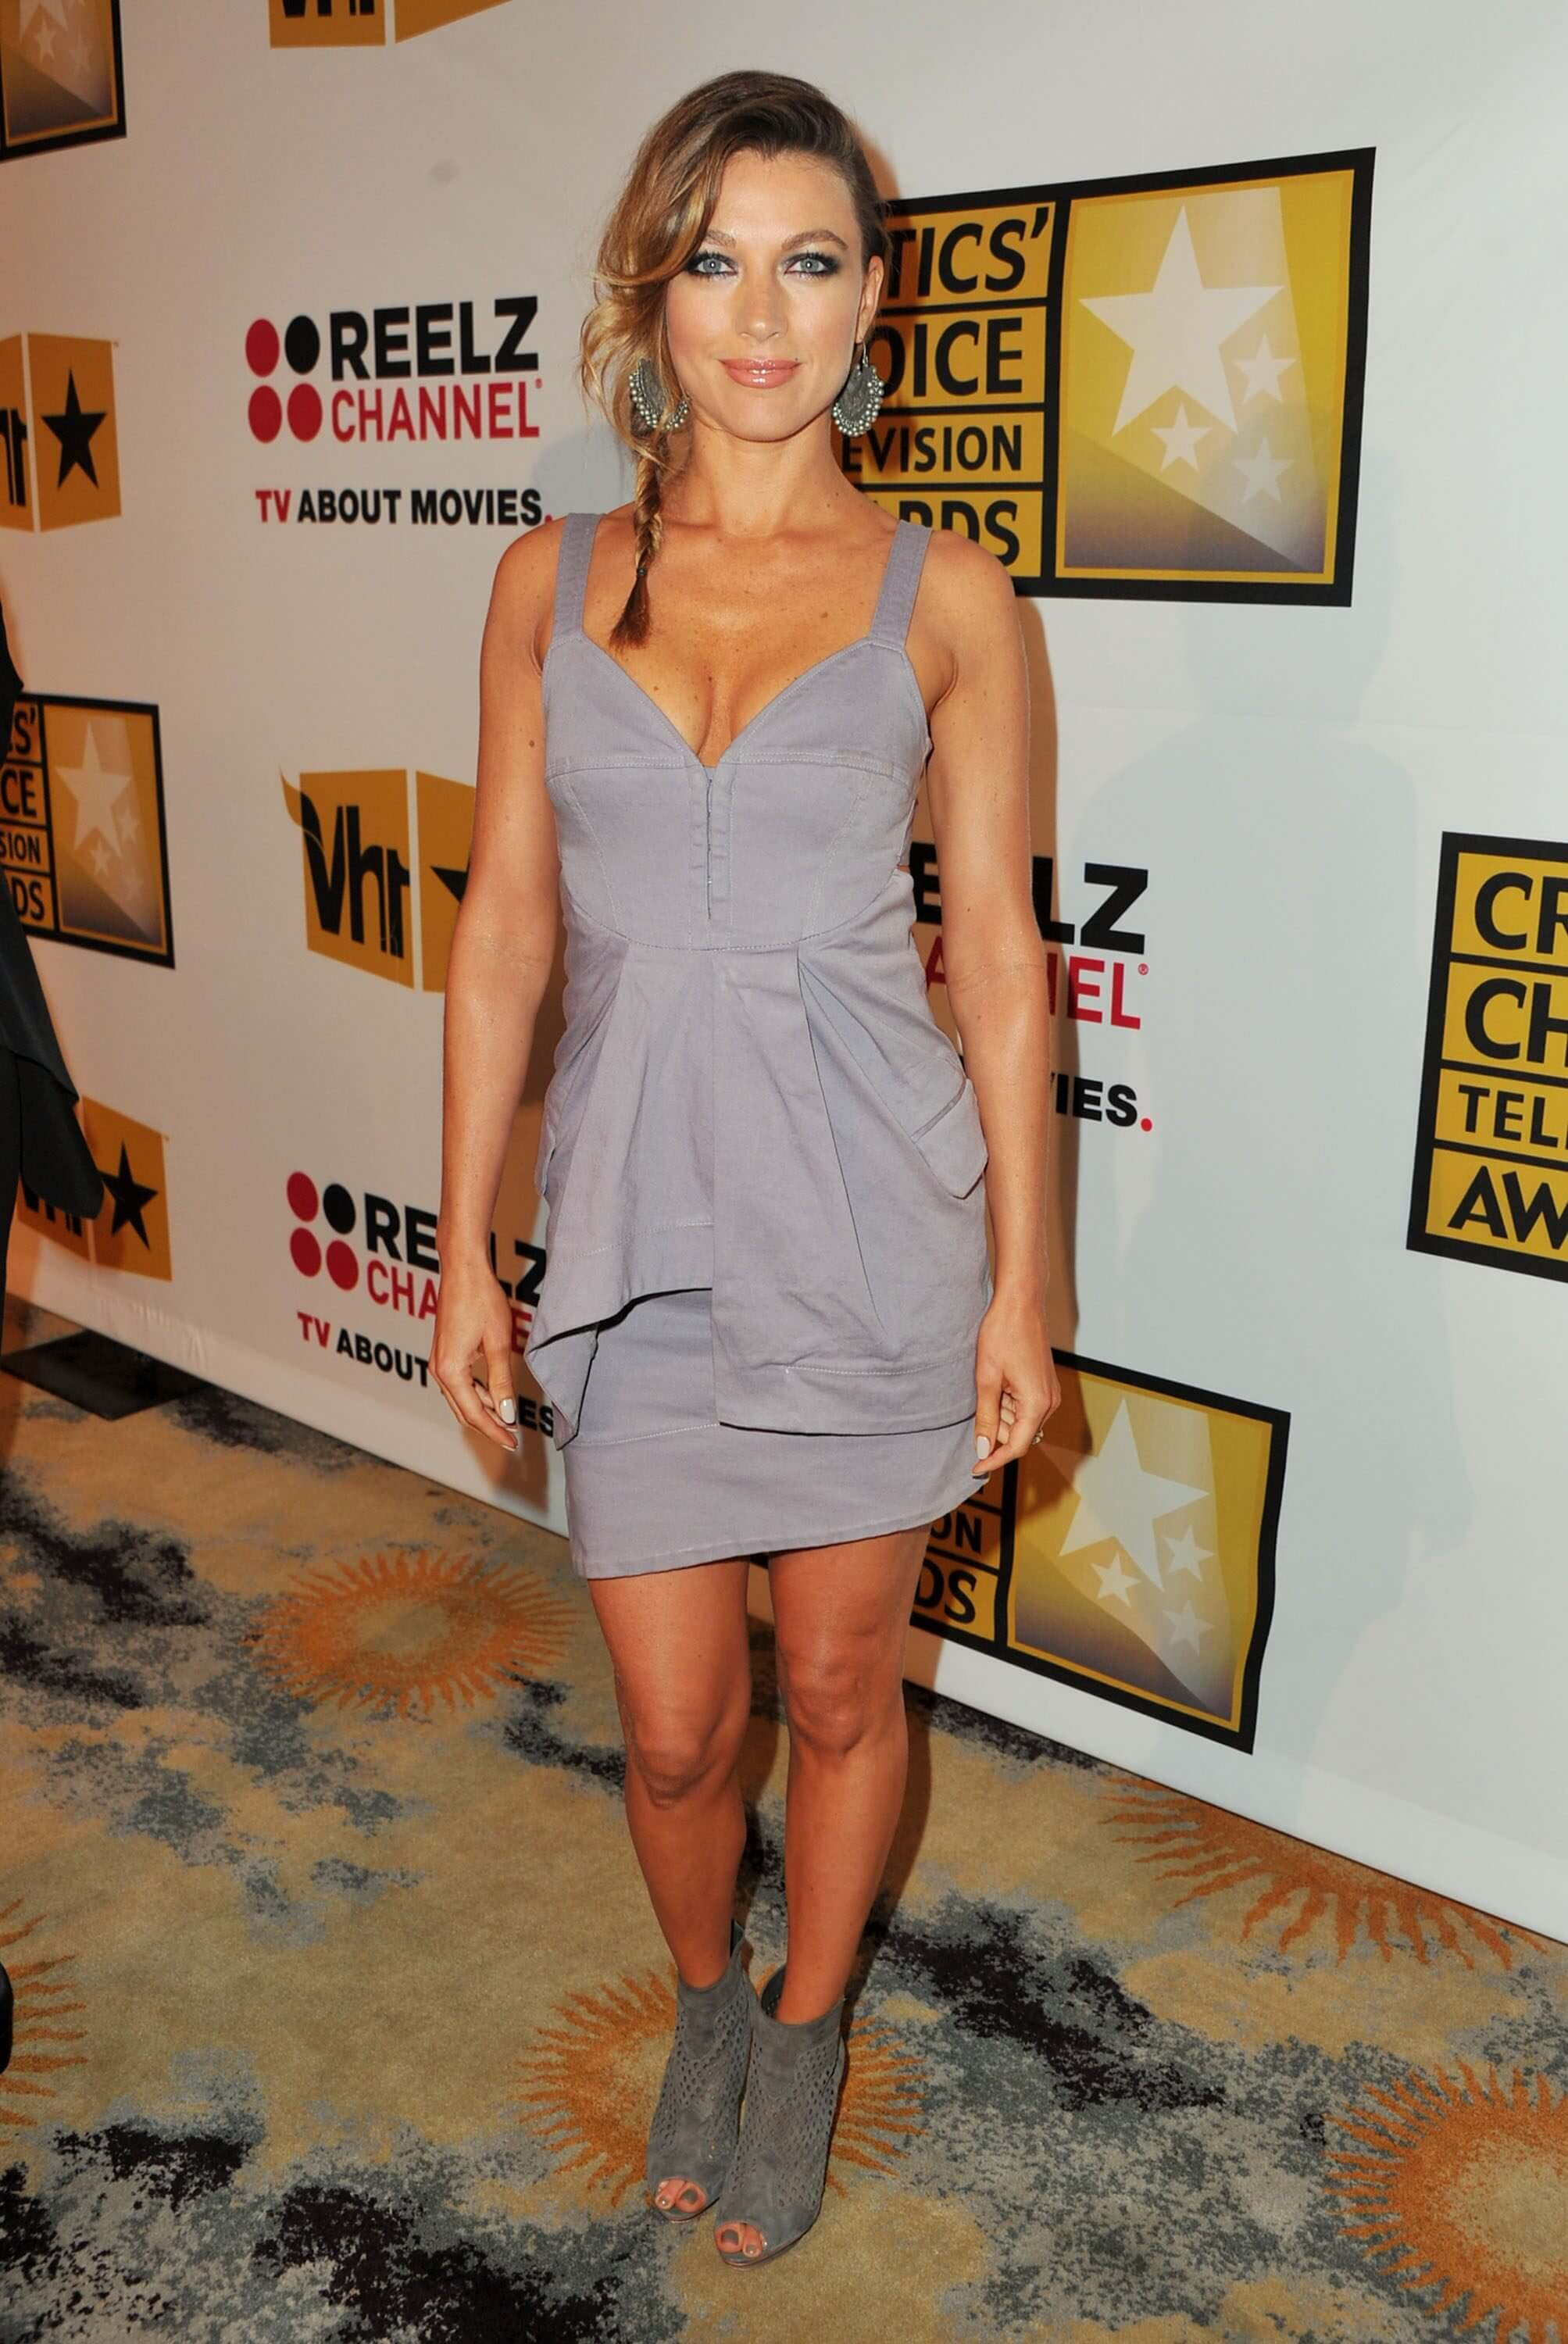 61 Hot Pictures Of Natalie Zea Are Gift From God To Humans